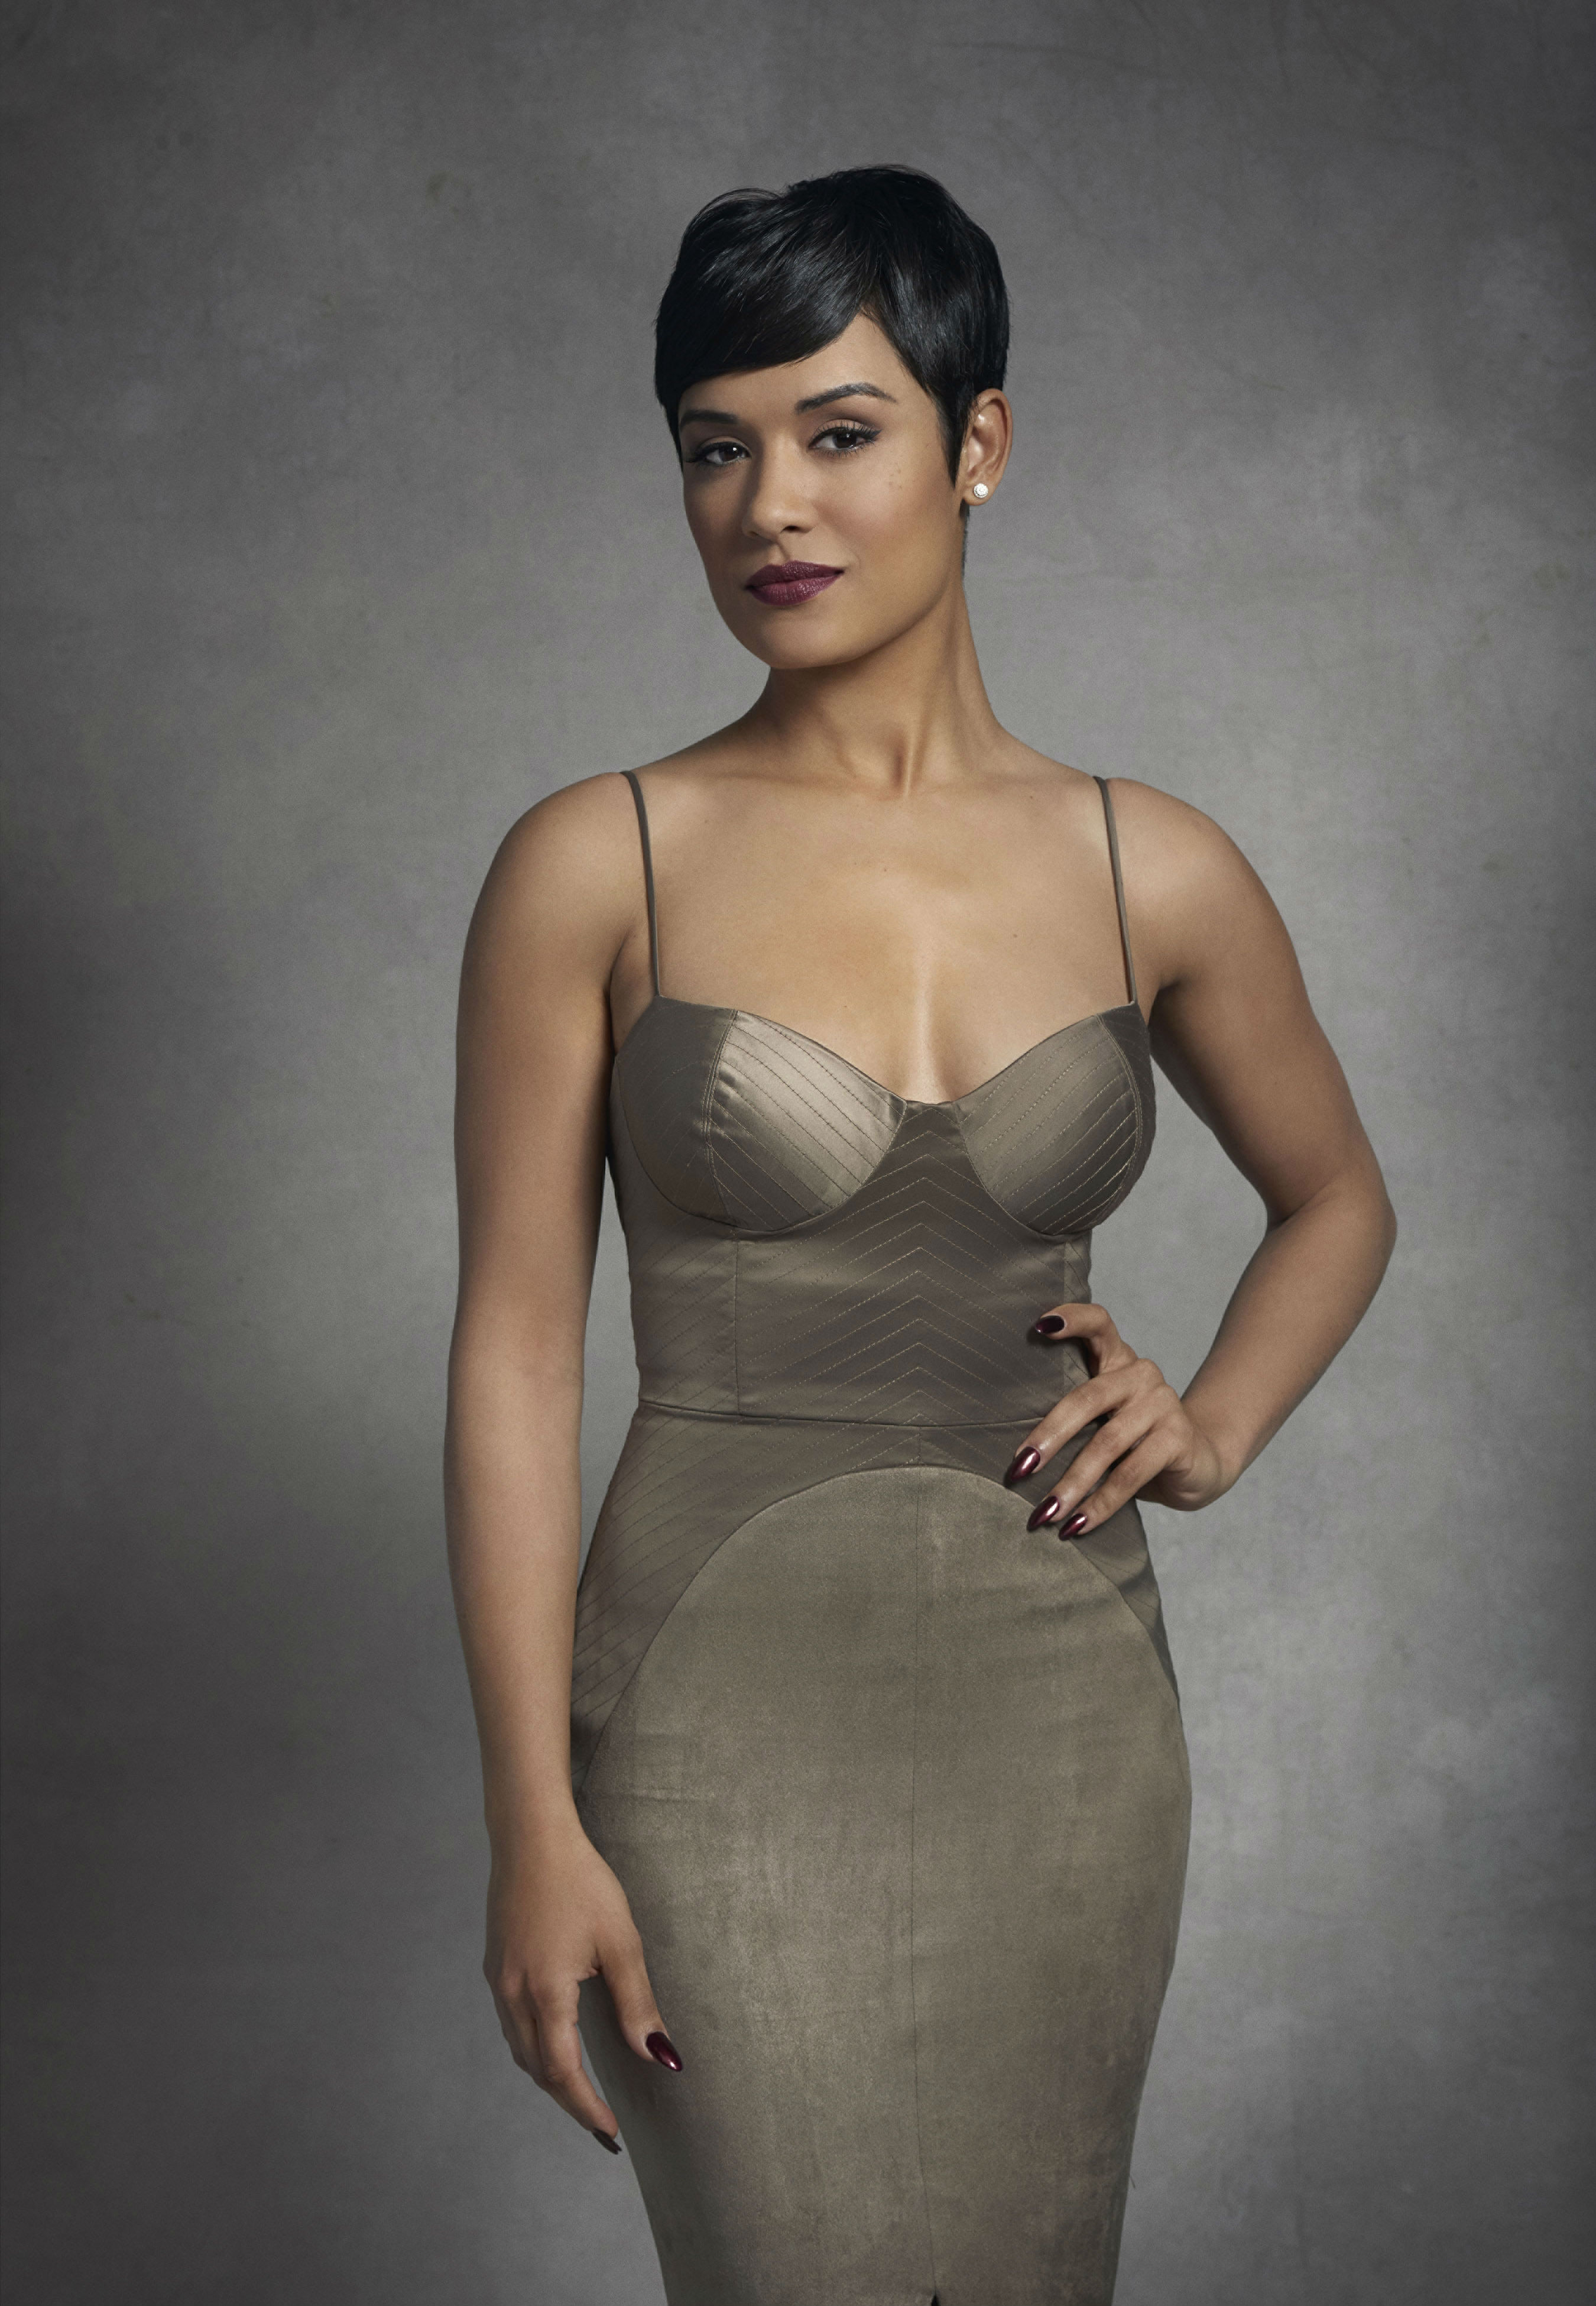 Grace Gealey awesome dress 3